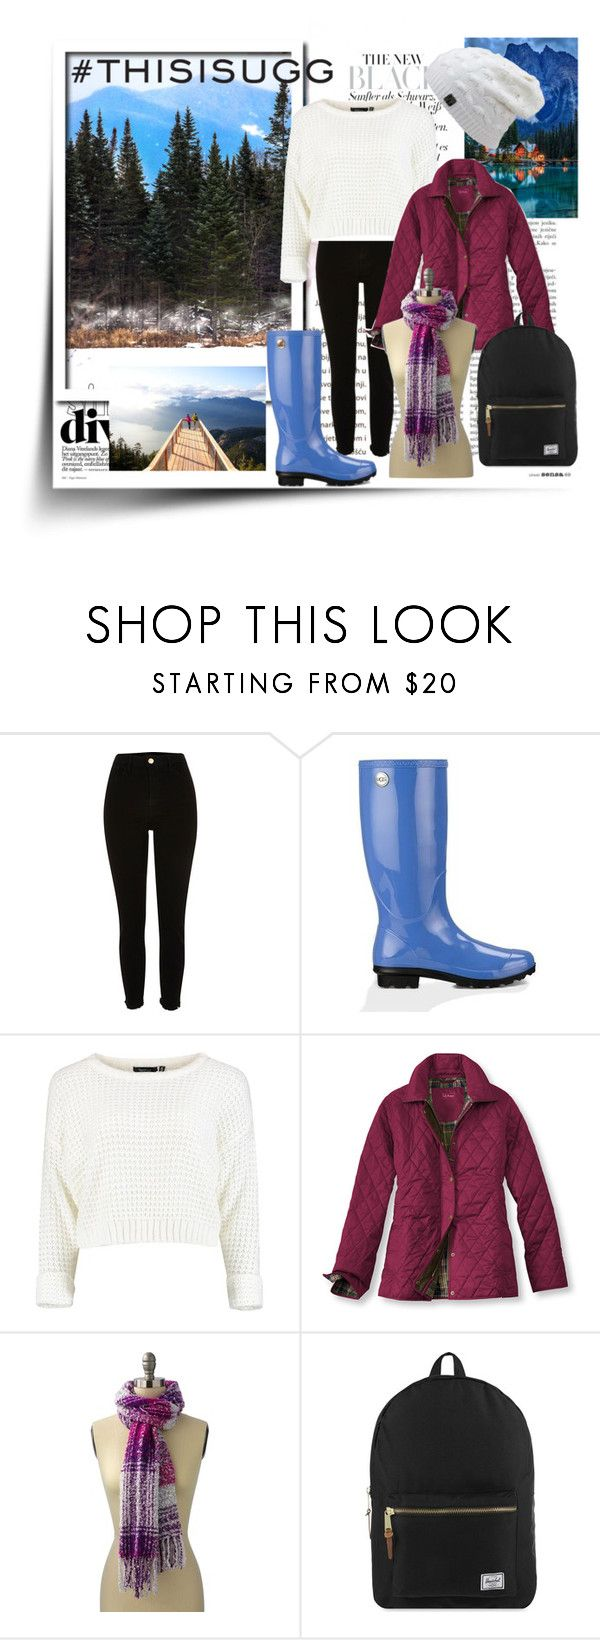 """""""Play With Prints In UGG: Contest Entry"""" by veronika235 ❤ liked on Polyvore featuring UGG Australia, L.L.Bean, Lands' End and Herschel Supply Co."""